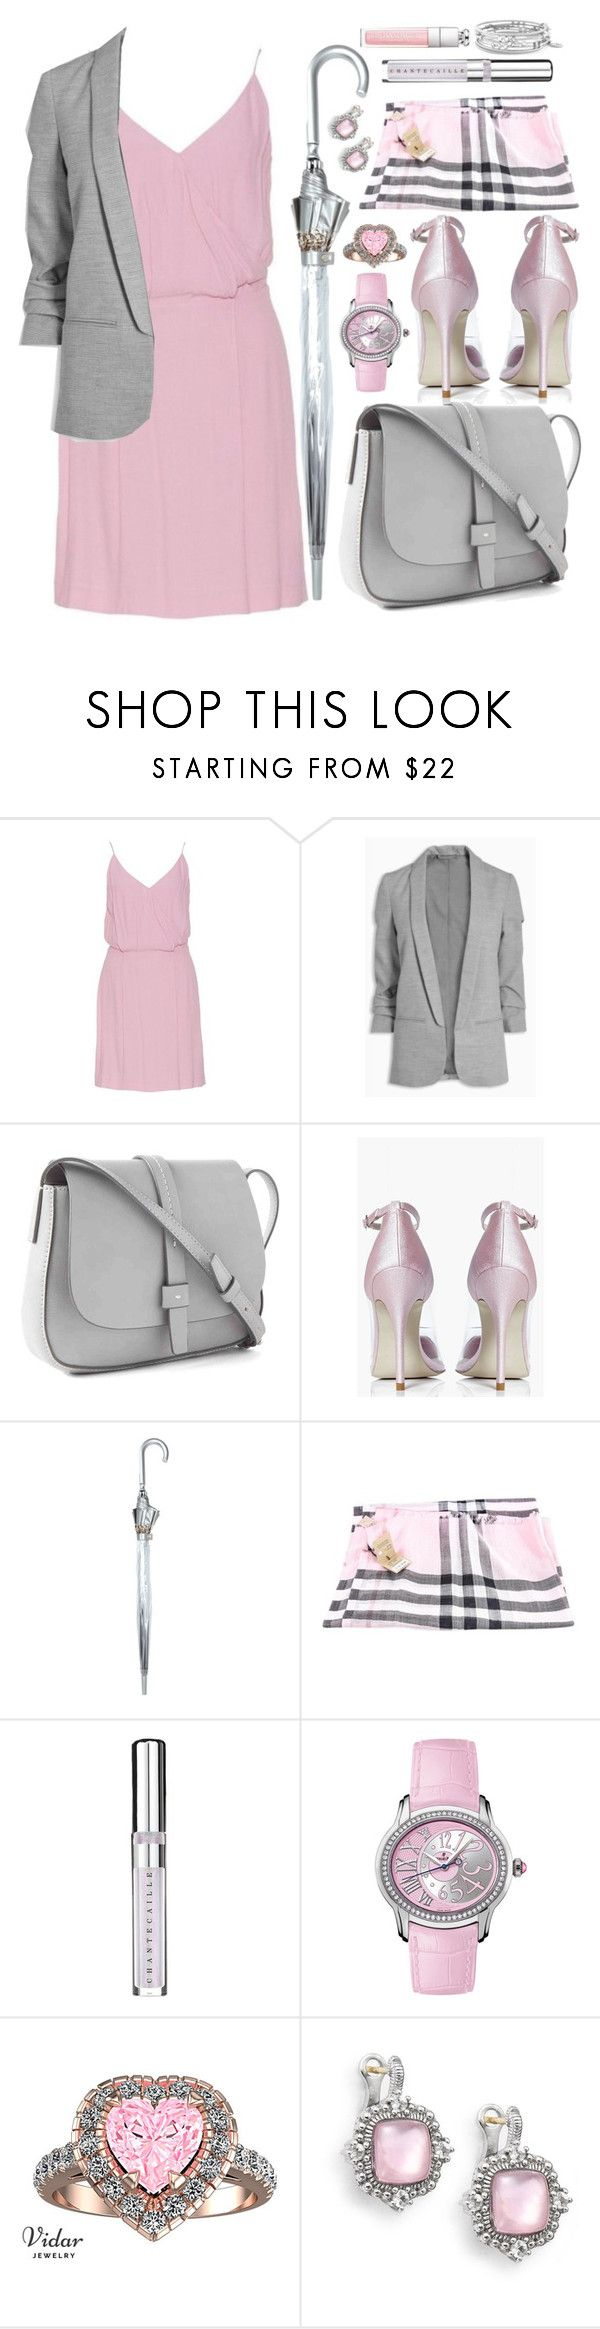 """Grayish Pink"" by maheanani ❤ liked on Polyvore featuring Gap, Boohoo, Fulton, Chantecaille, Audemars Piguet, Judith Ripka and Jessica Simpson"